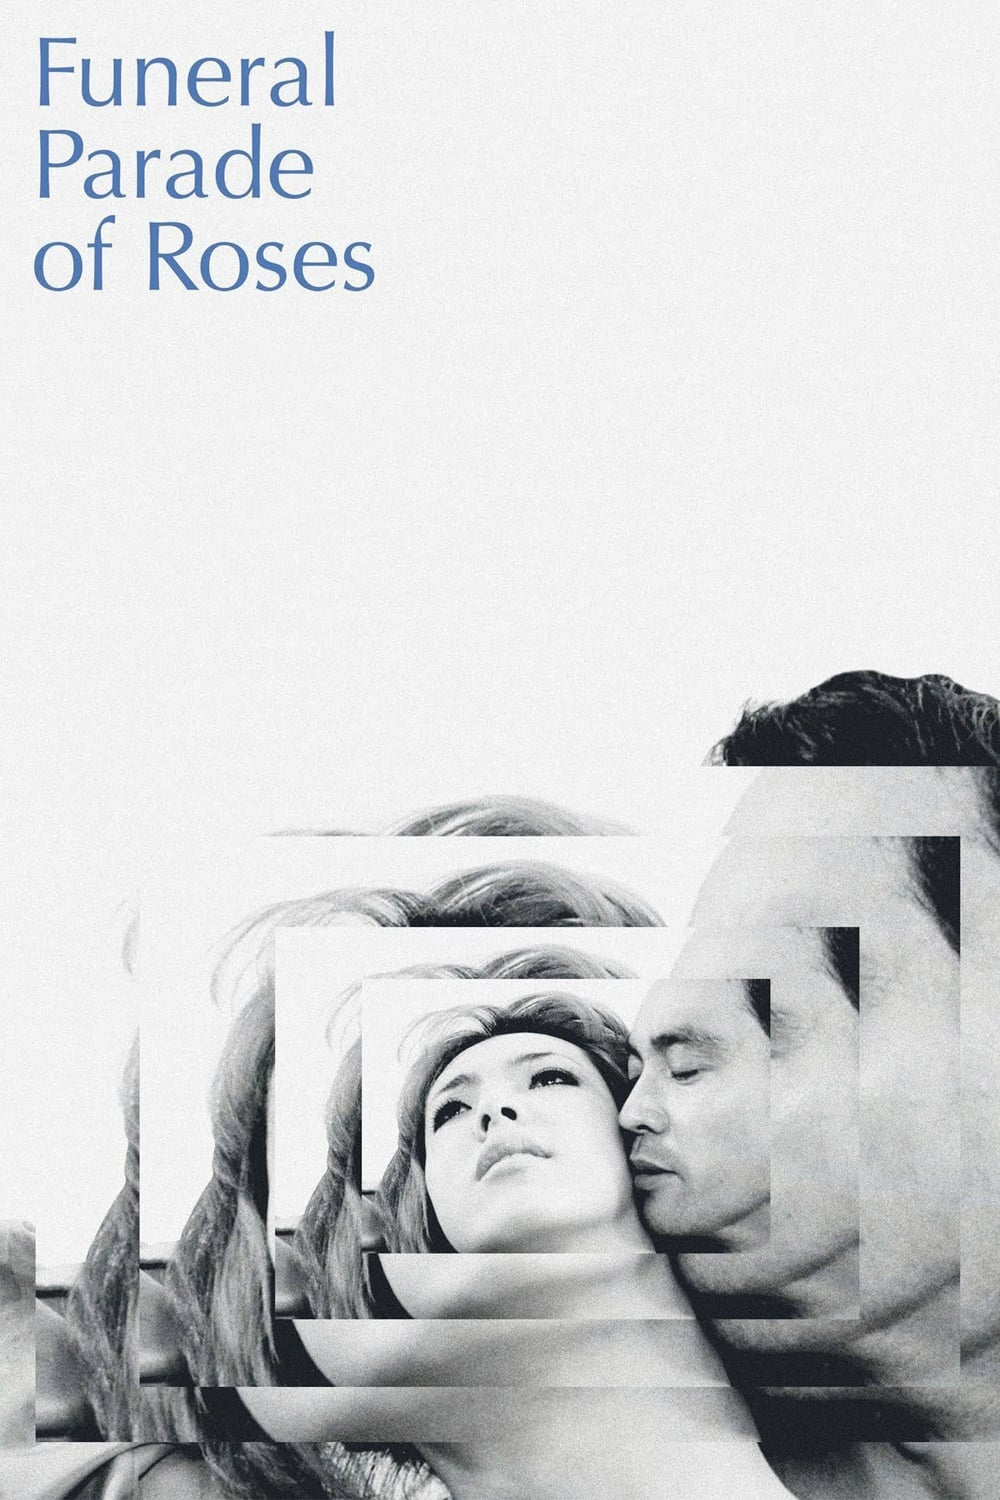 Poster for FUNERAL PARADE OF ROSES